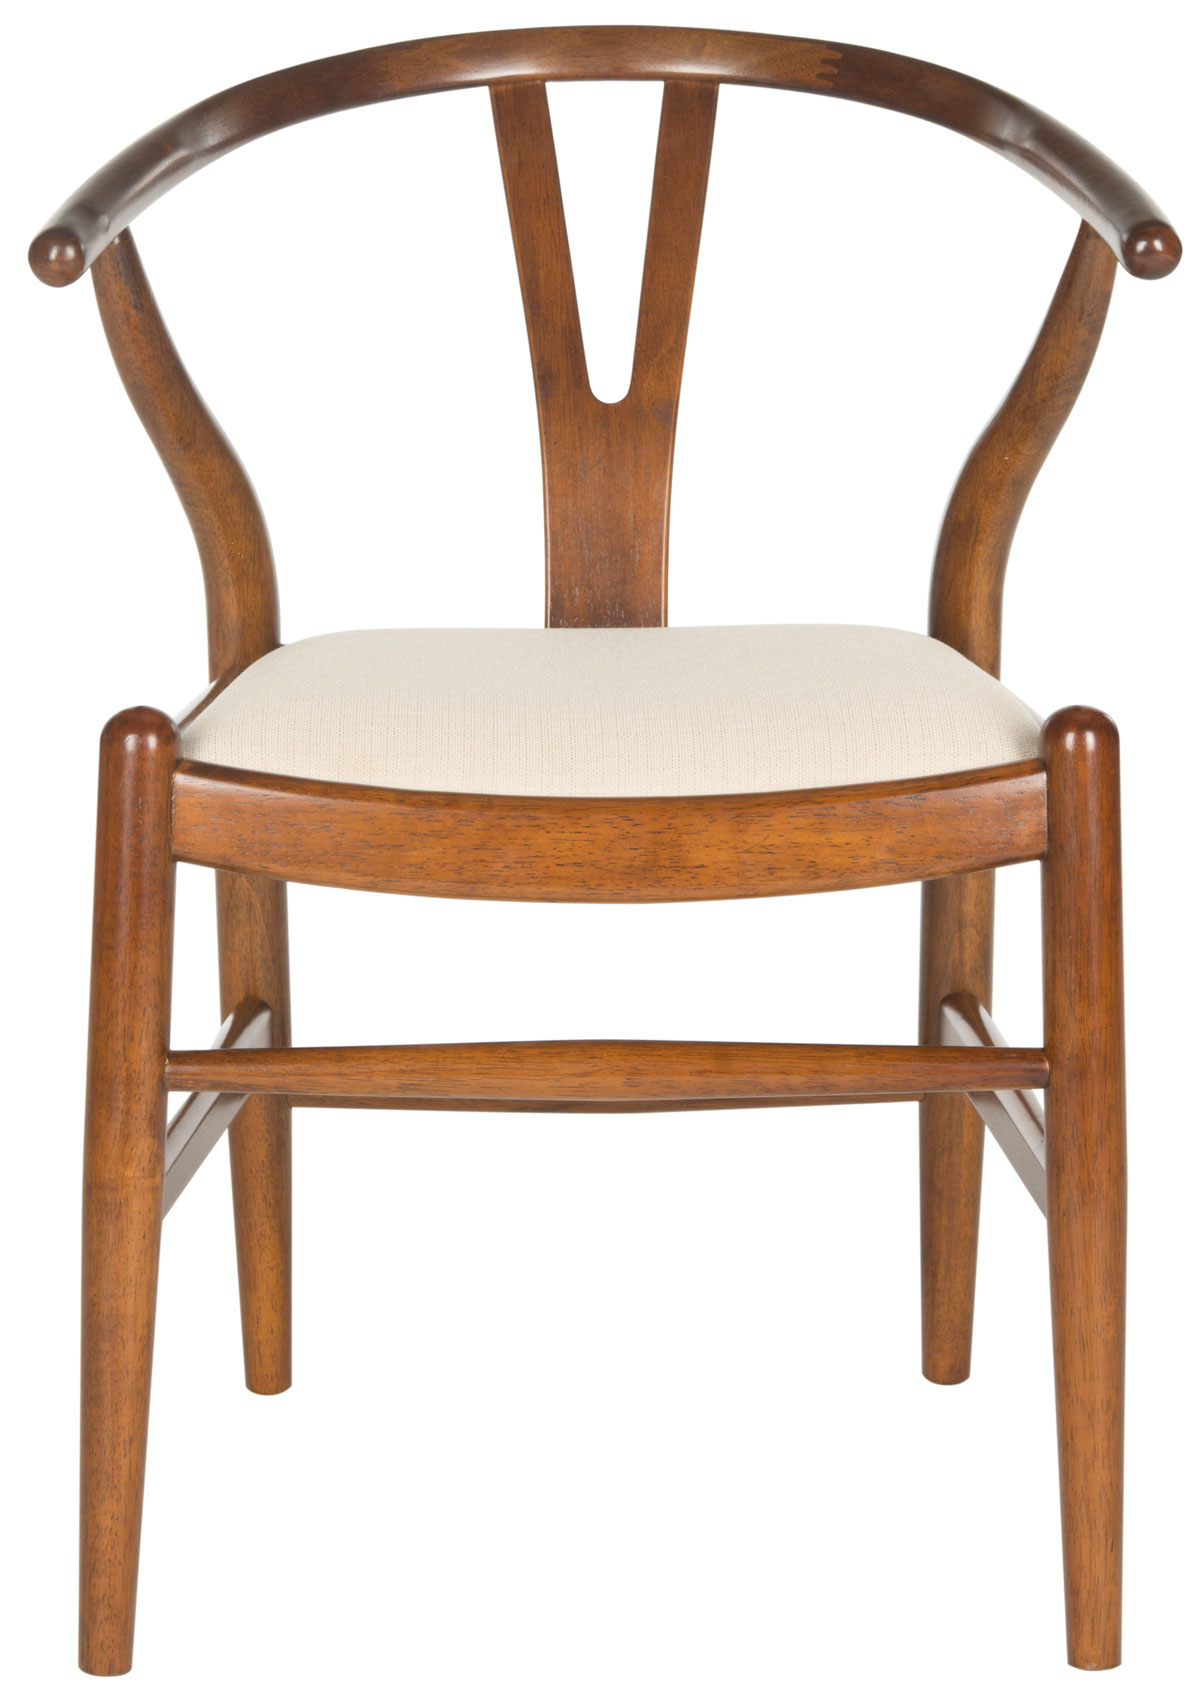 Image of: Safavieh Dining Chairs Armless